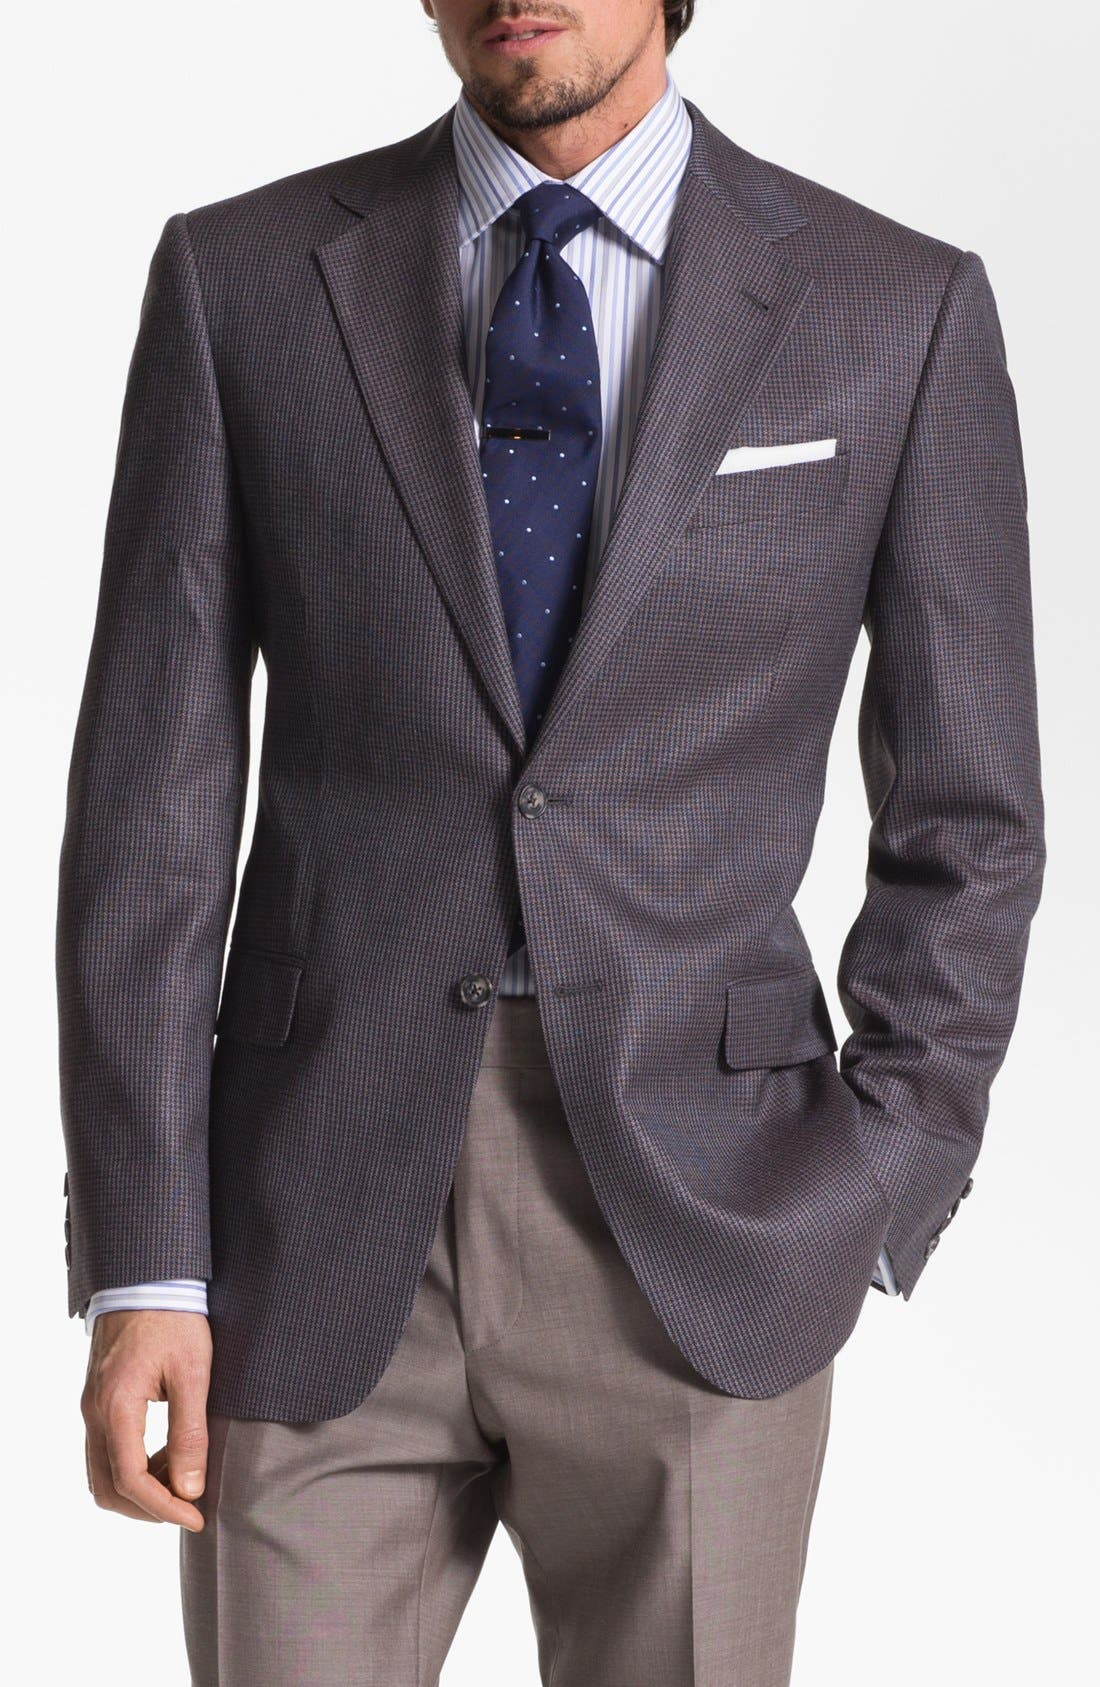 Alternate Image 1 Selected - Joseph Abboud 'Signature Silver' Houndstooth Sportcoat